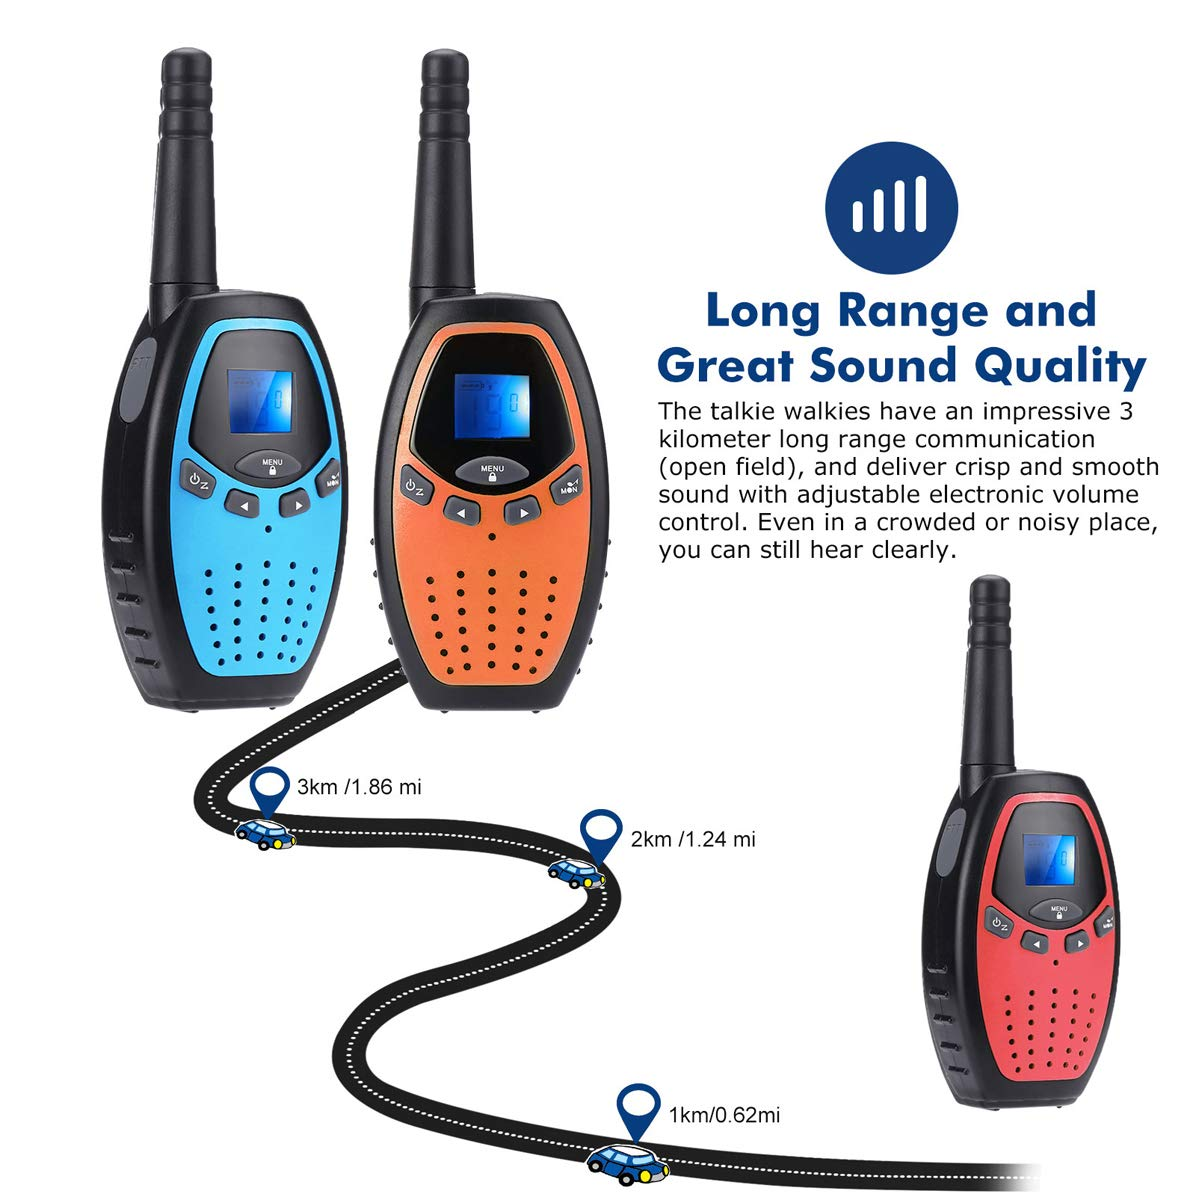 Fistone Walkie Talkies for Kids, 3 Packs 22 Channels 2 Way Radio Long Range Interphone Toys for Boy & Girls Age 3 6 7 8 9 12 Up for Outdoor Adventures, Camping, Hiking by Fistone (Image #4)